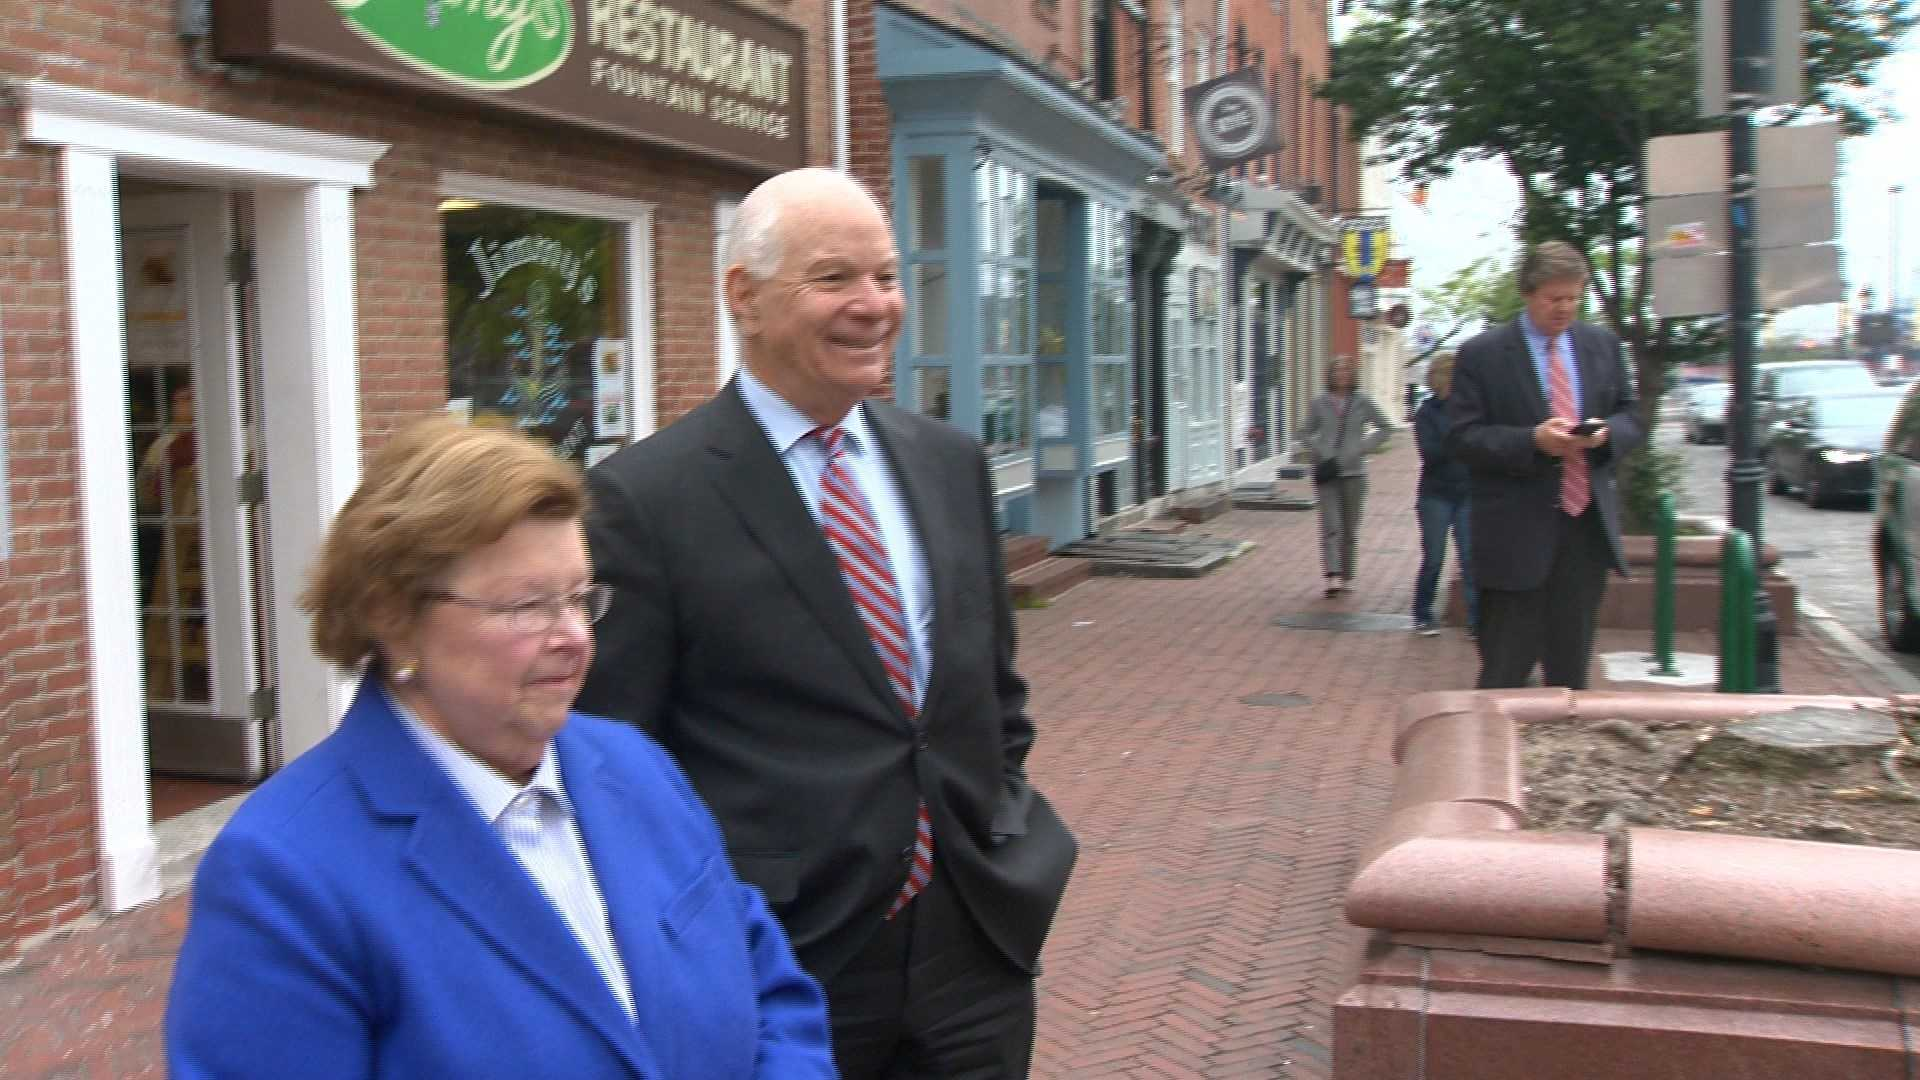 Maryland U.S. Sens. Barbara Mikulski and Ben Cardin address the media outside Jimmy's in Fells Point.